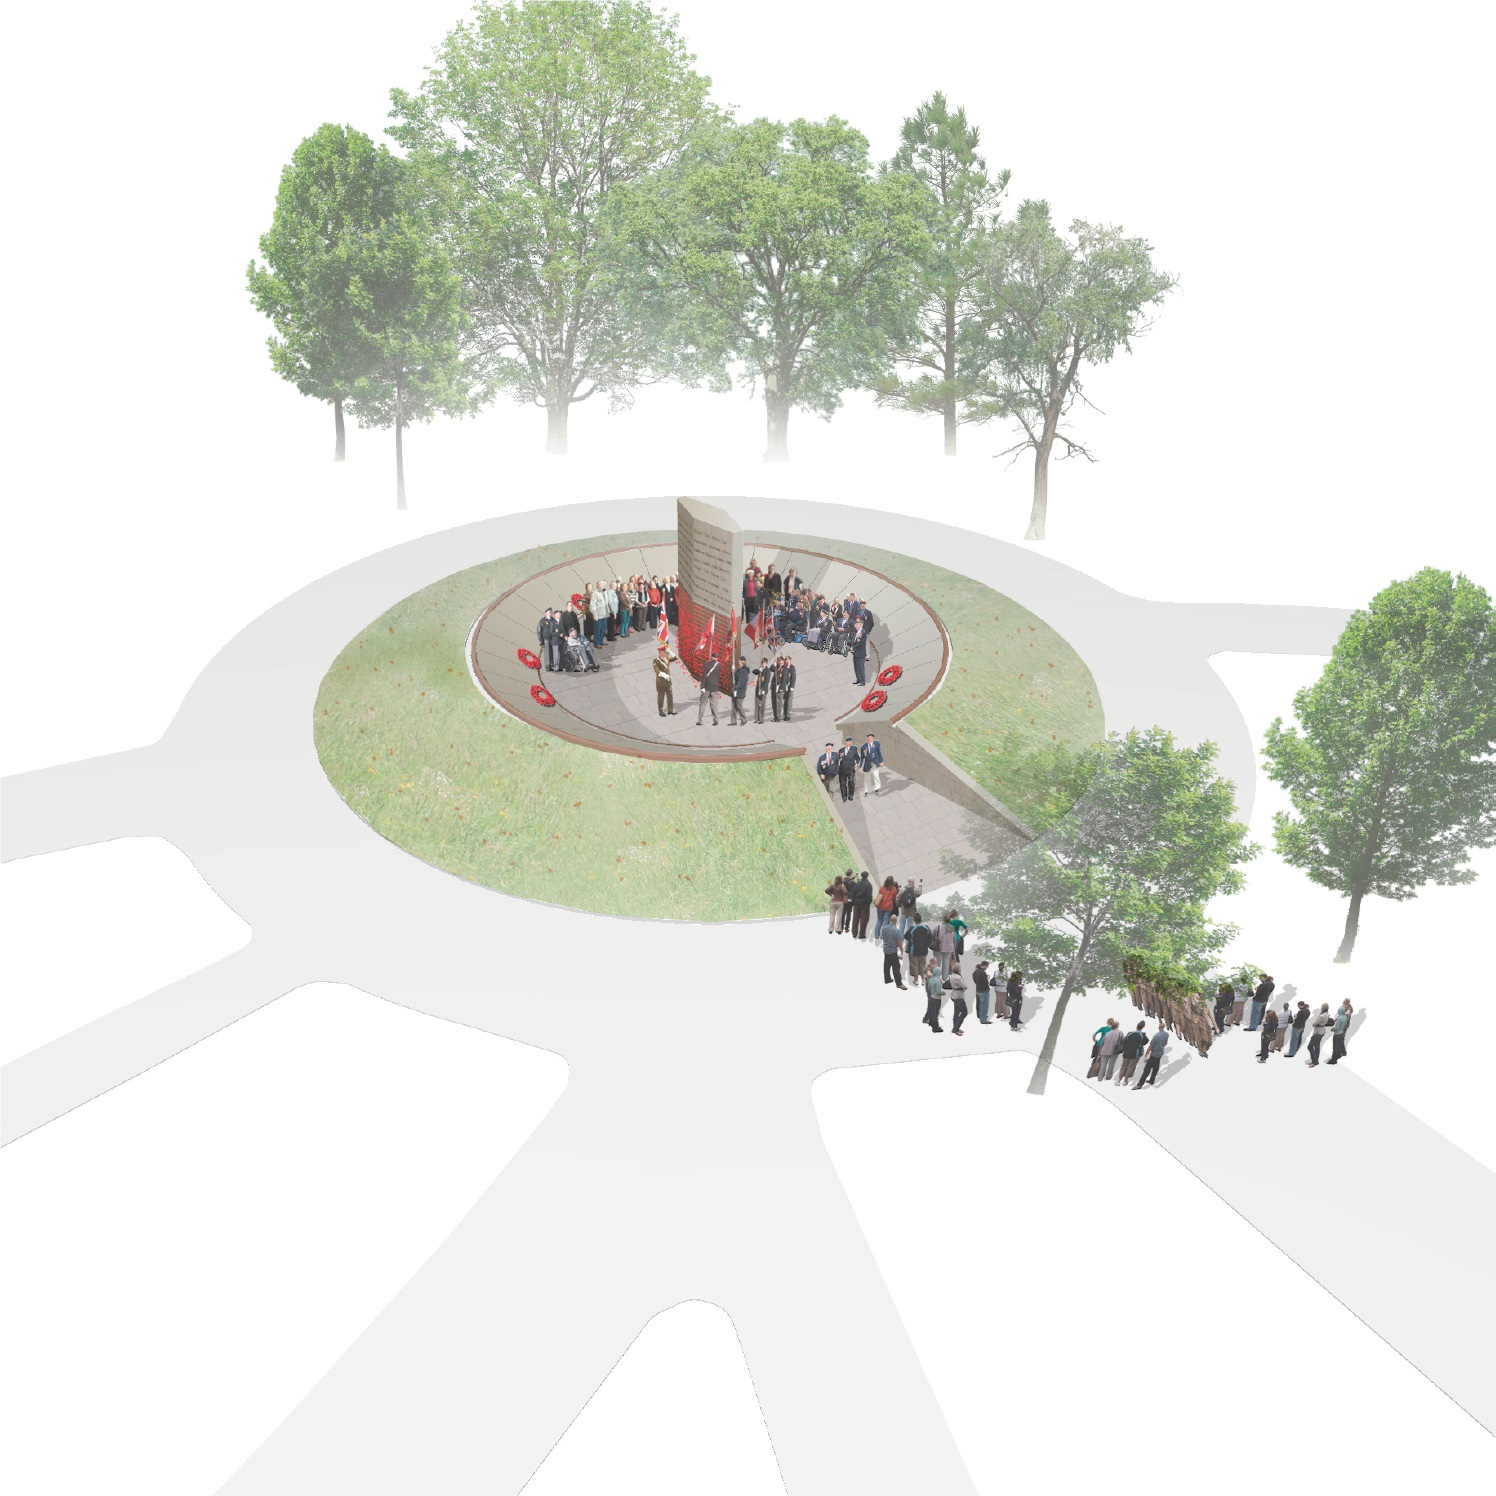 Artist's impression of the new memorial